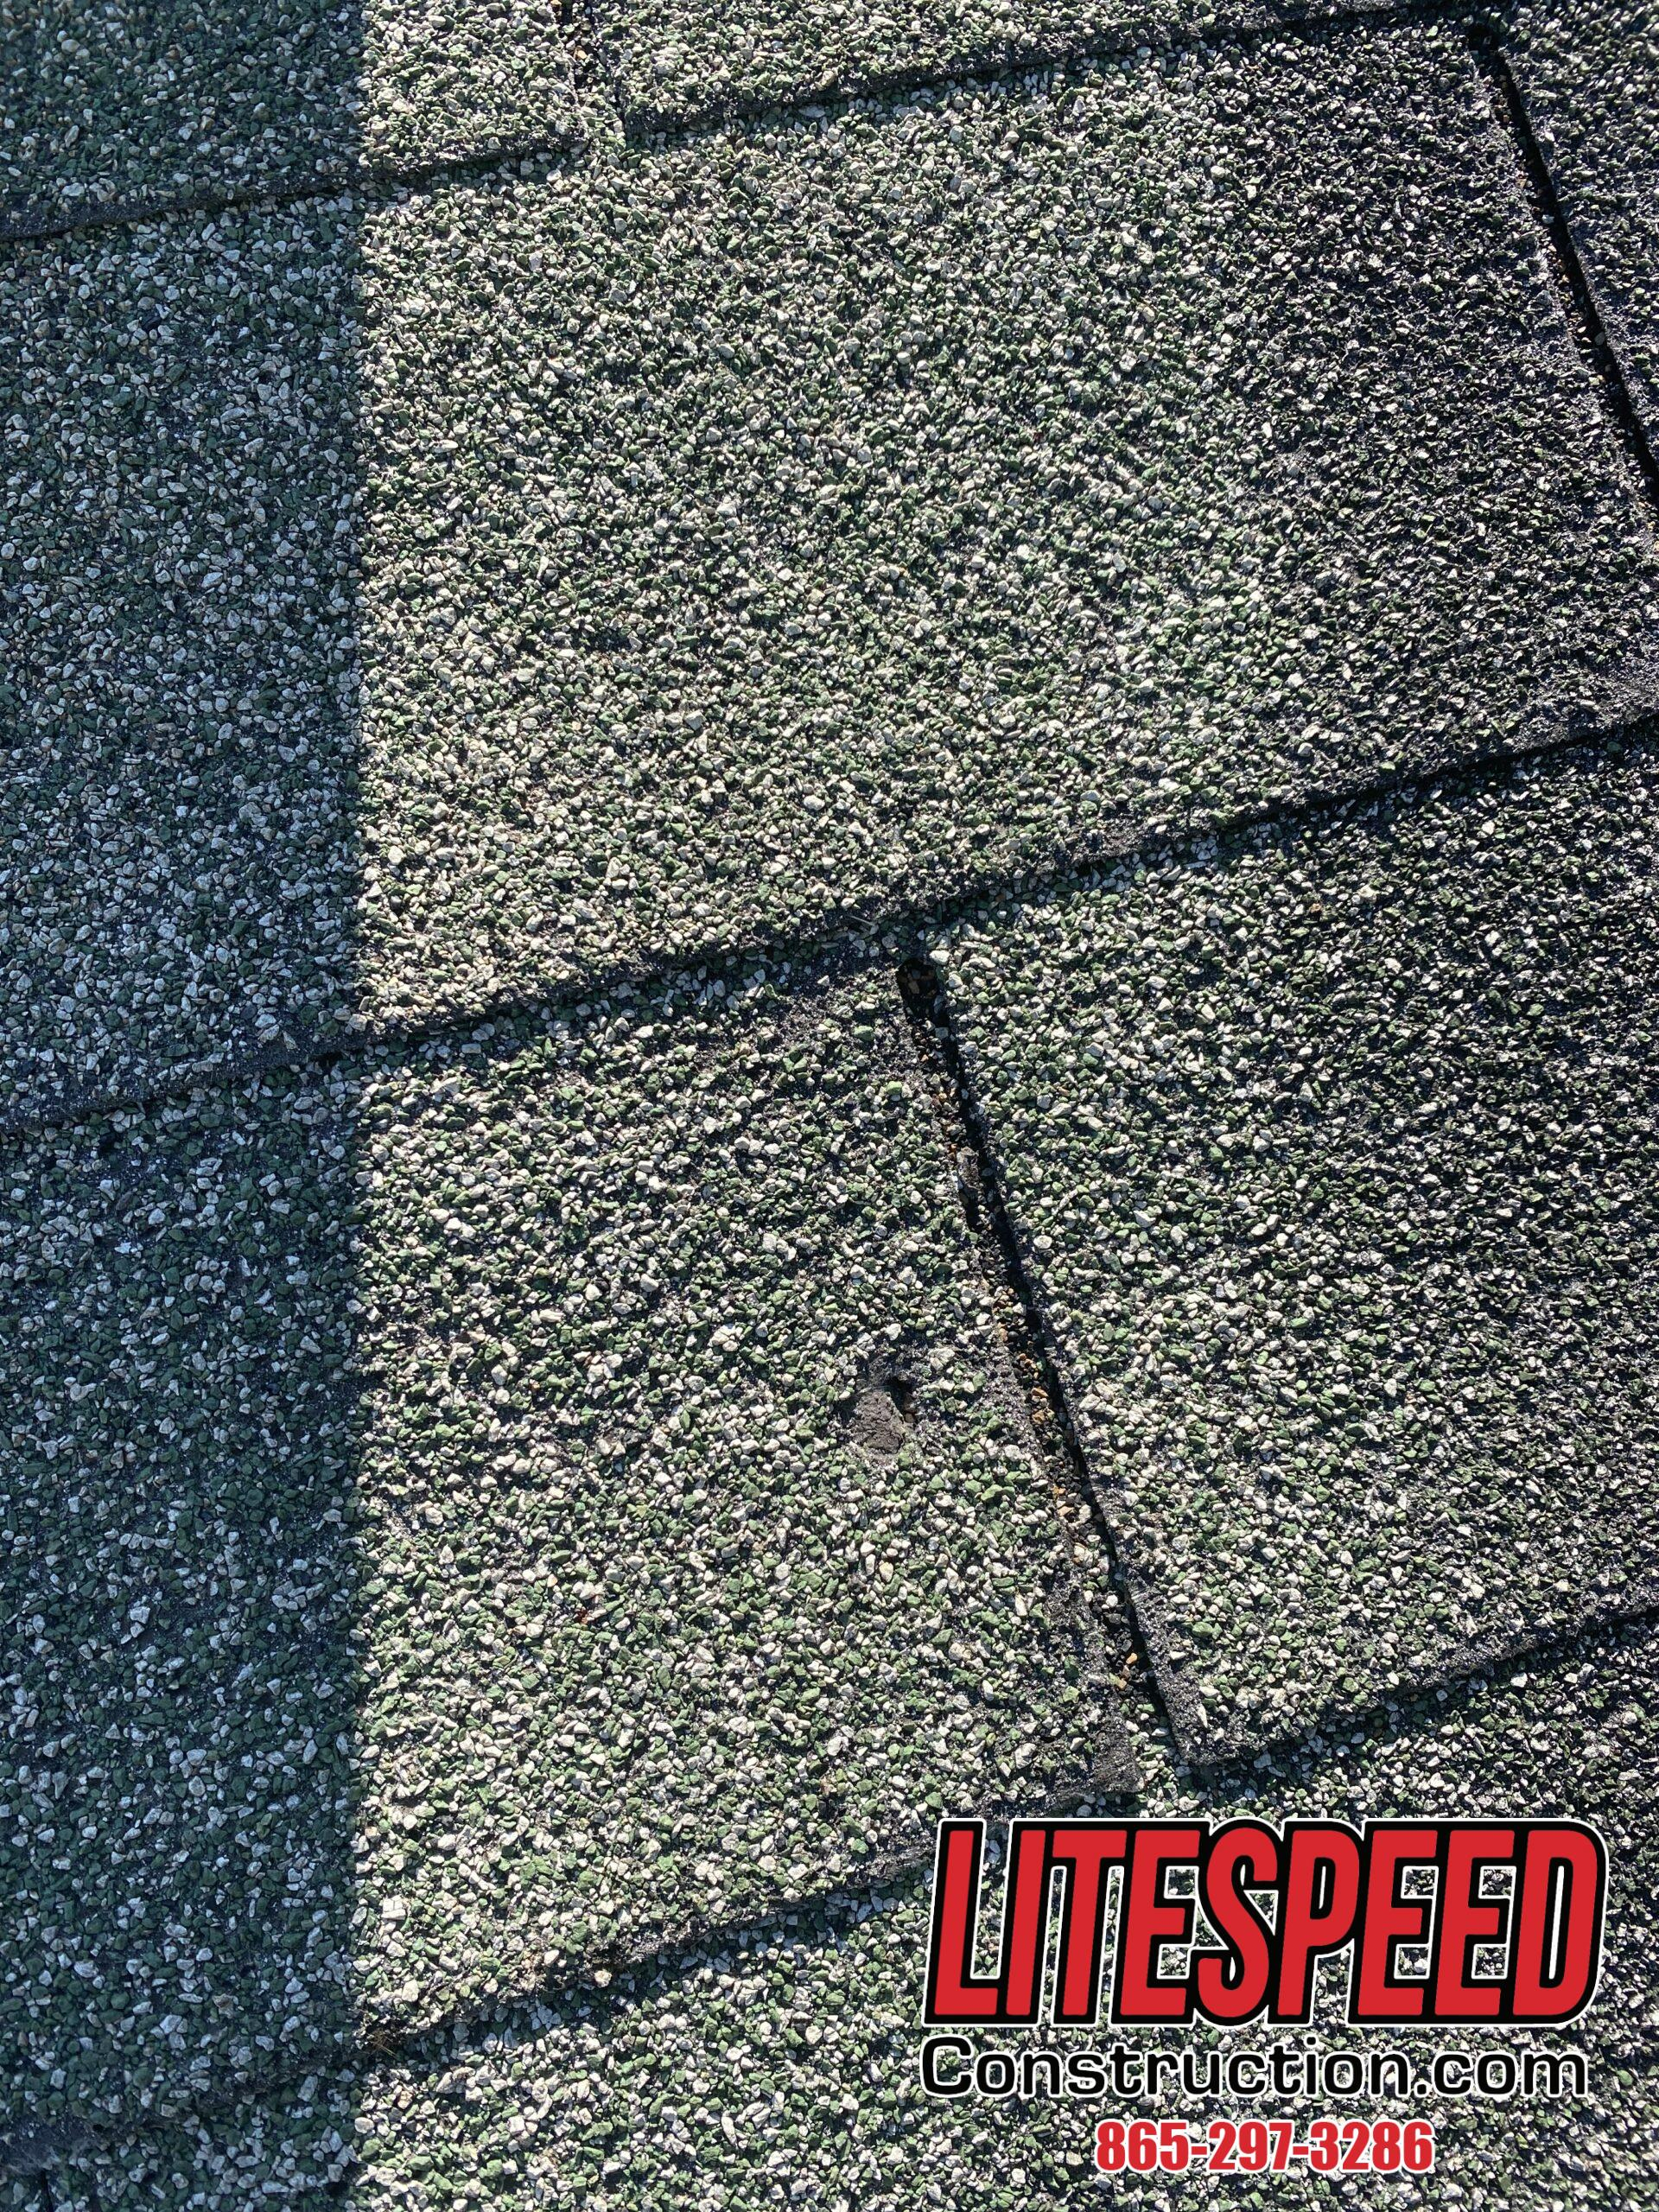 This is a picture of an old three tab roof with a piece of the shingle missing